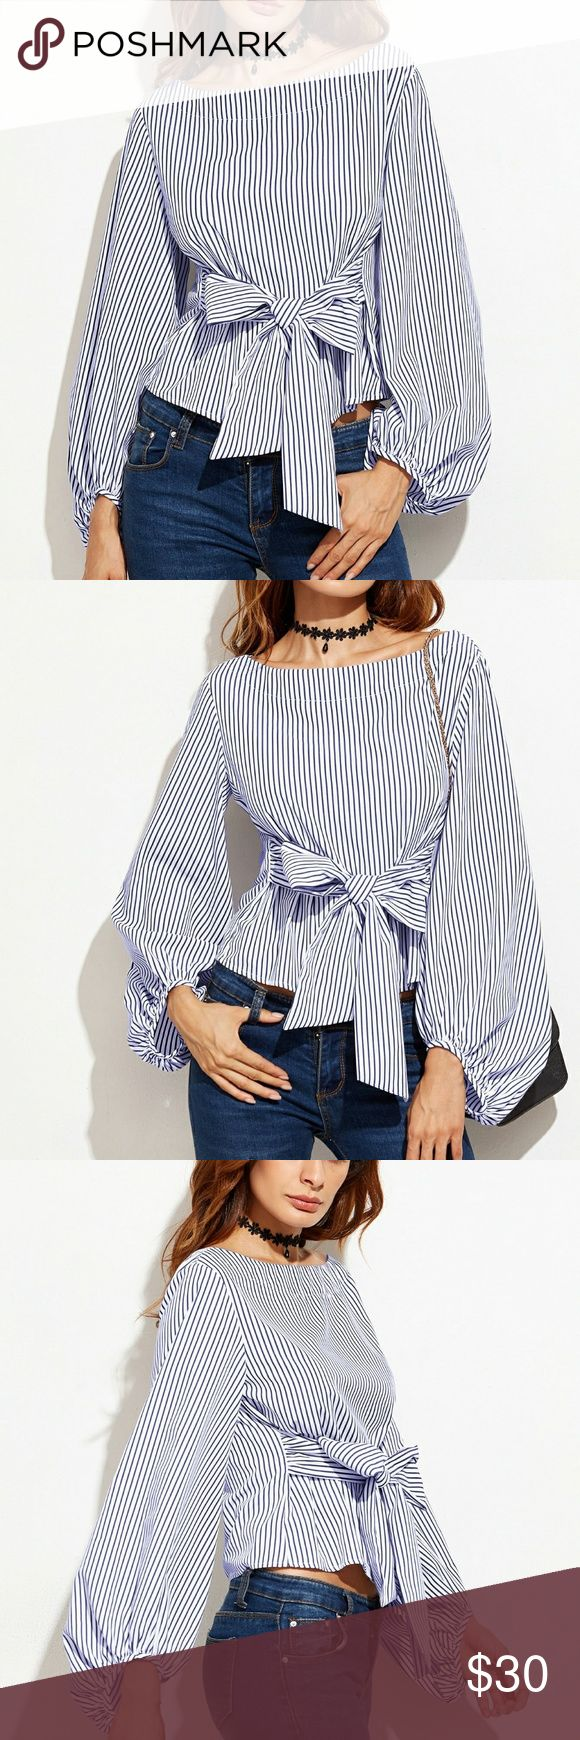 COMING THURSDAY! NWT Striped Front Bow Shirt NWT Blue and White Striped Front Bow Top! Tops